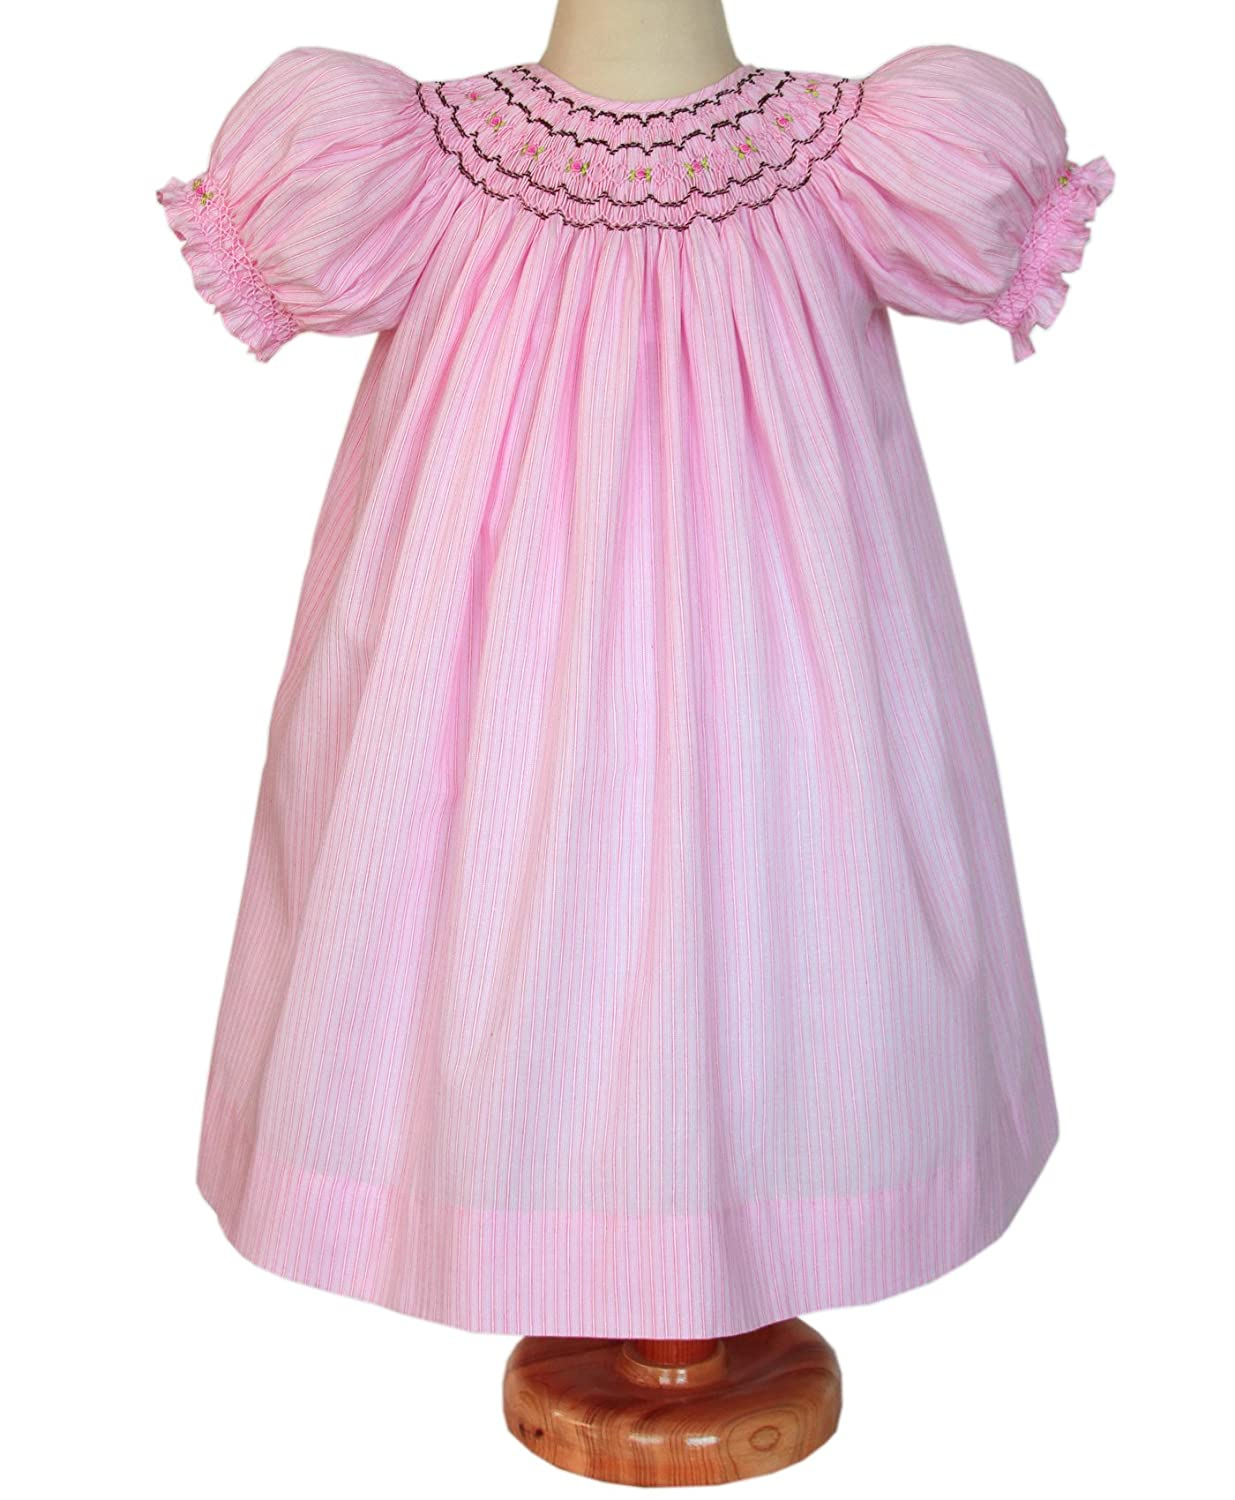 a914145ffd045 Amazon.com: Carouselwear Girls Pink Hand Smocked Bishop Dress and Brown  Embroidery: Clothing